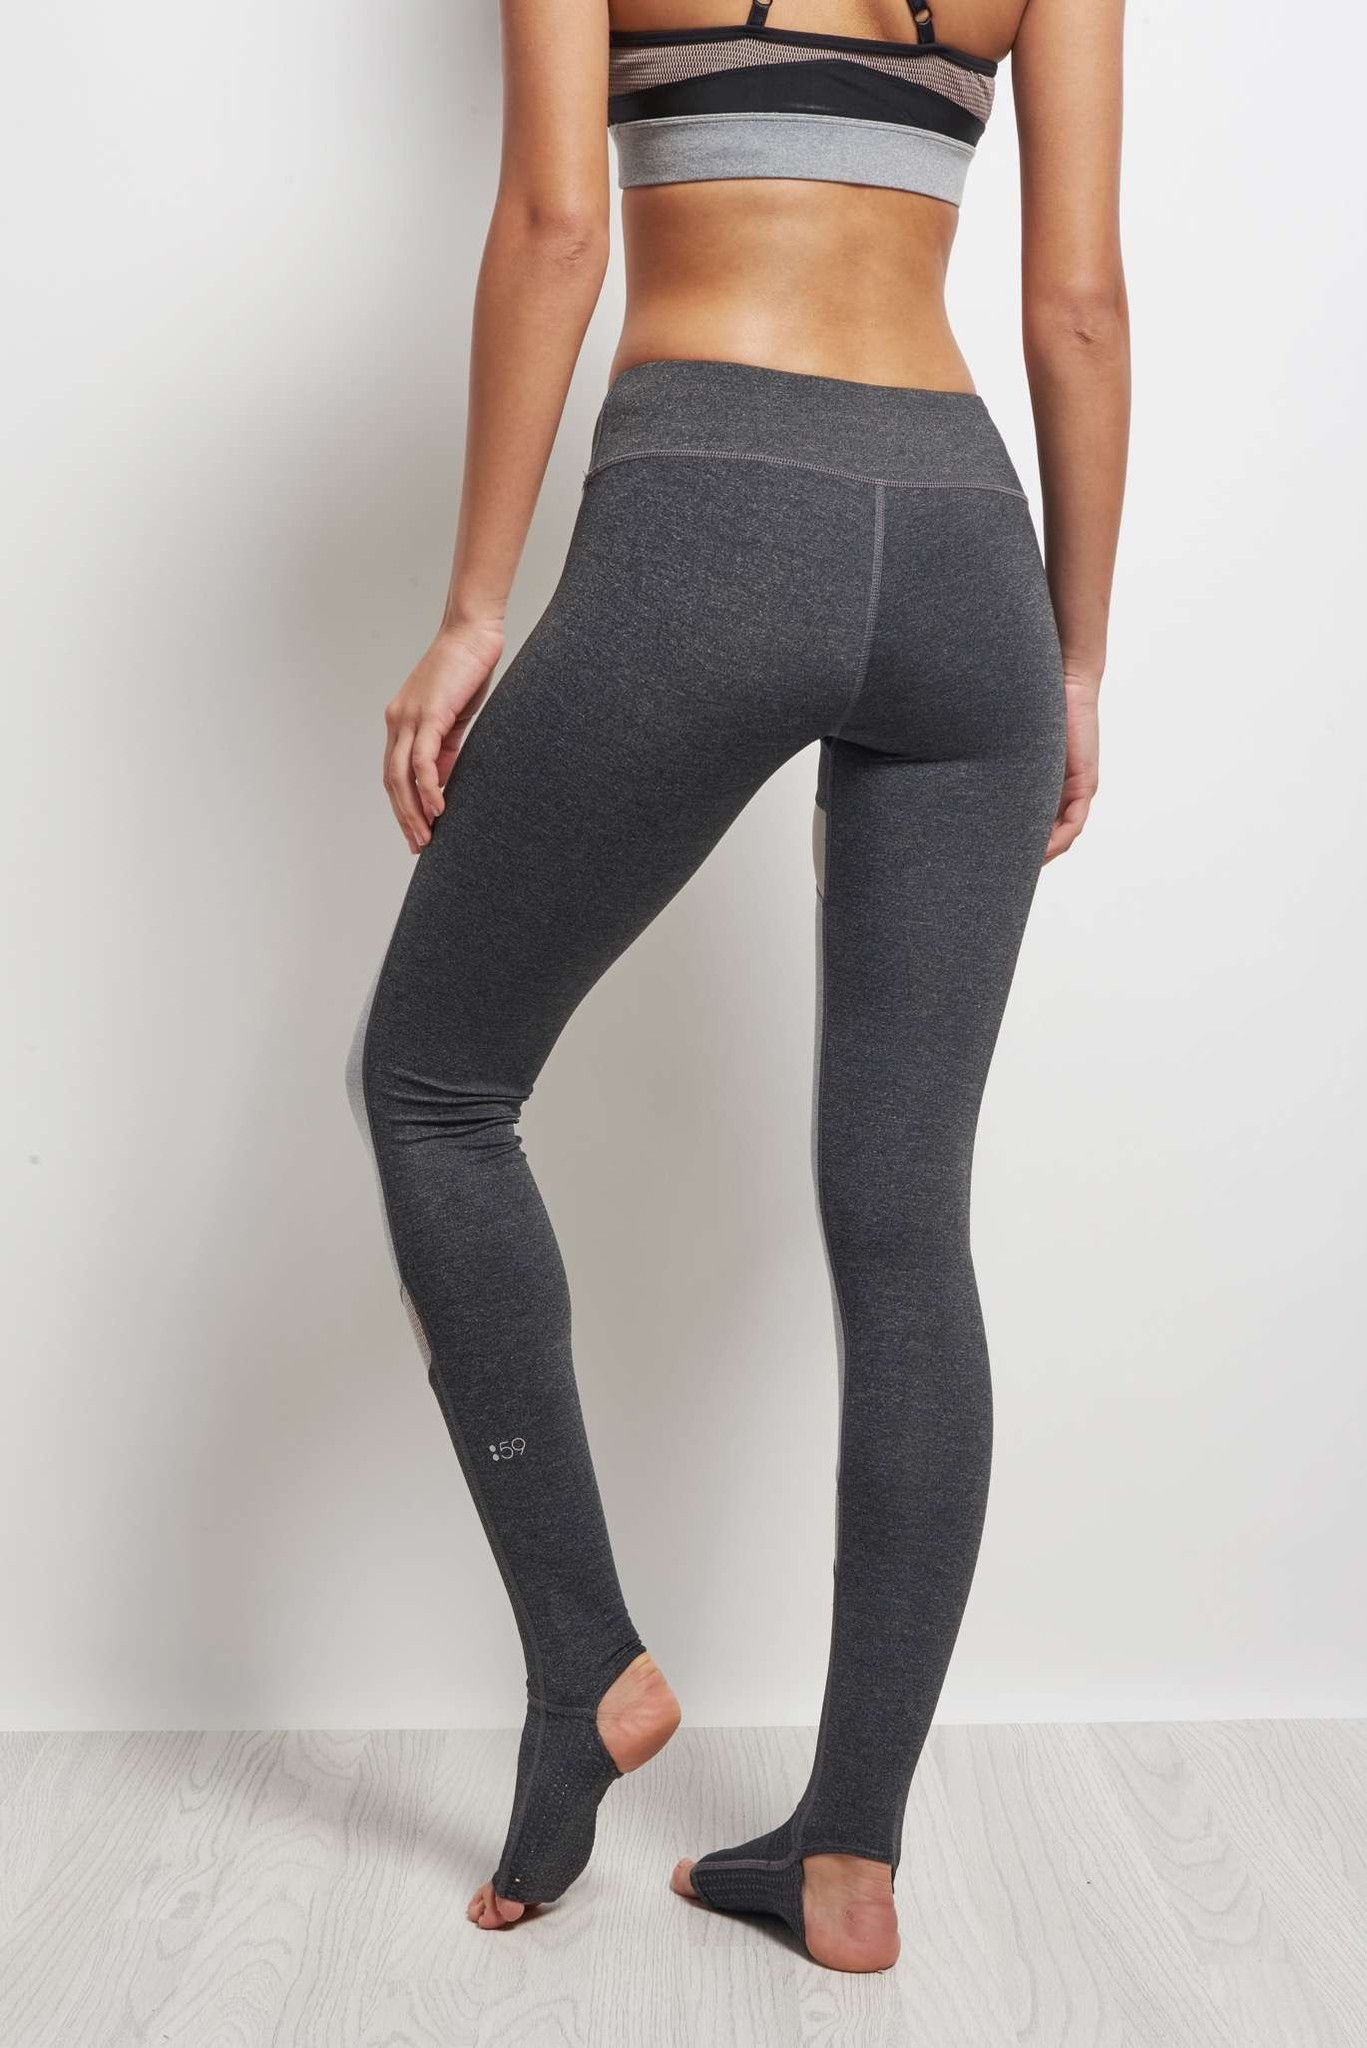 Splits59 Demi Stirrup Tight Heather Grey / Light Heather Grey image 3